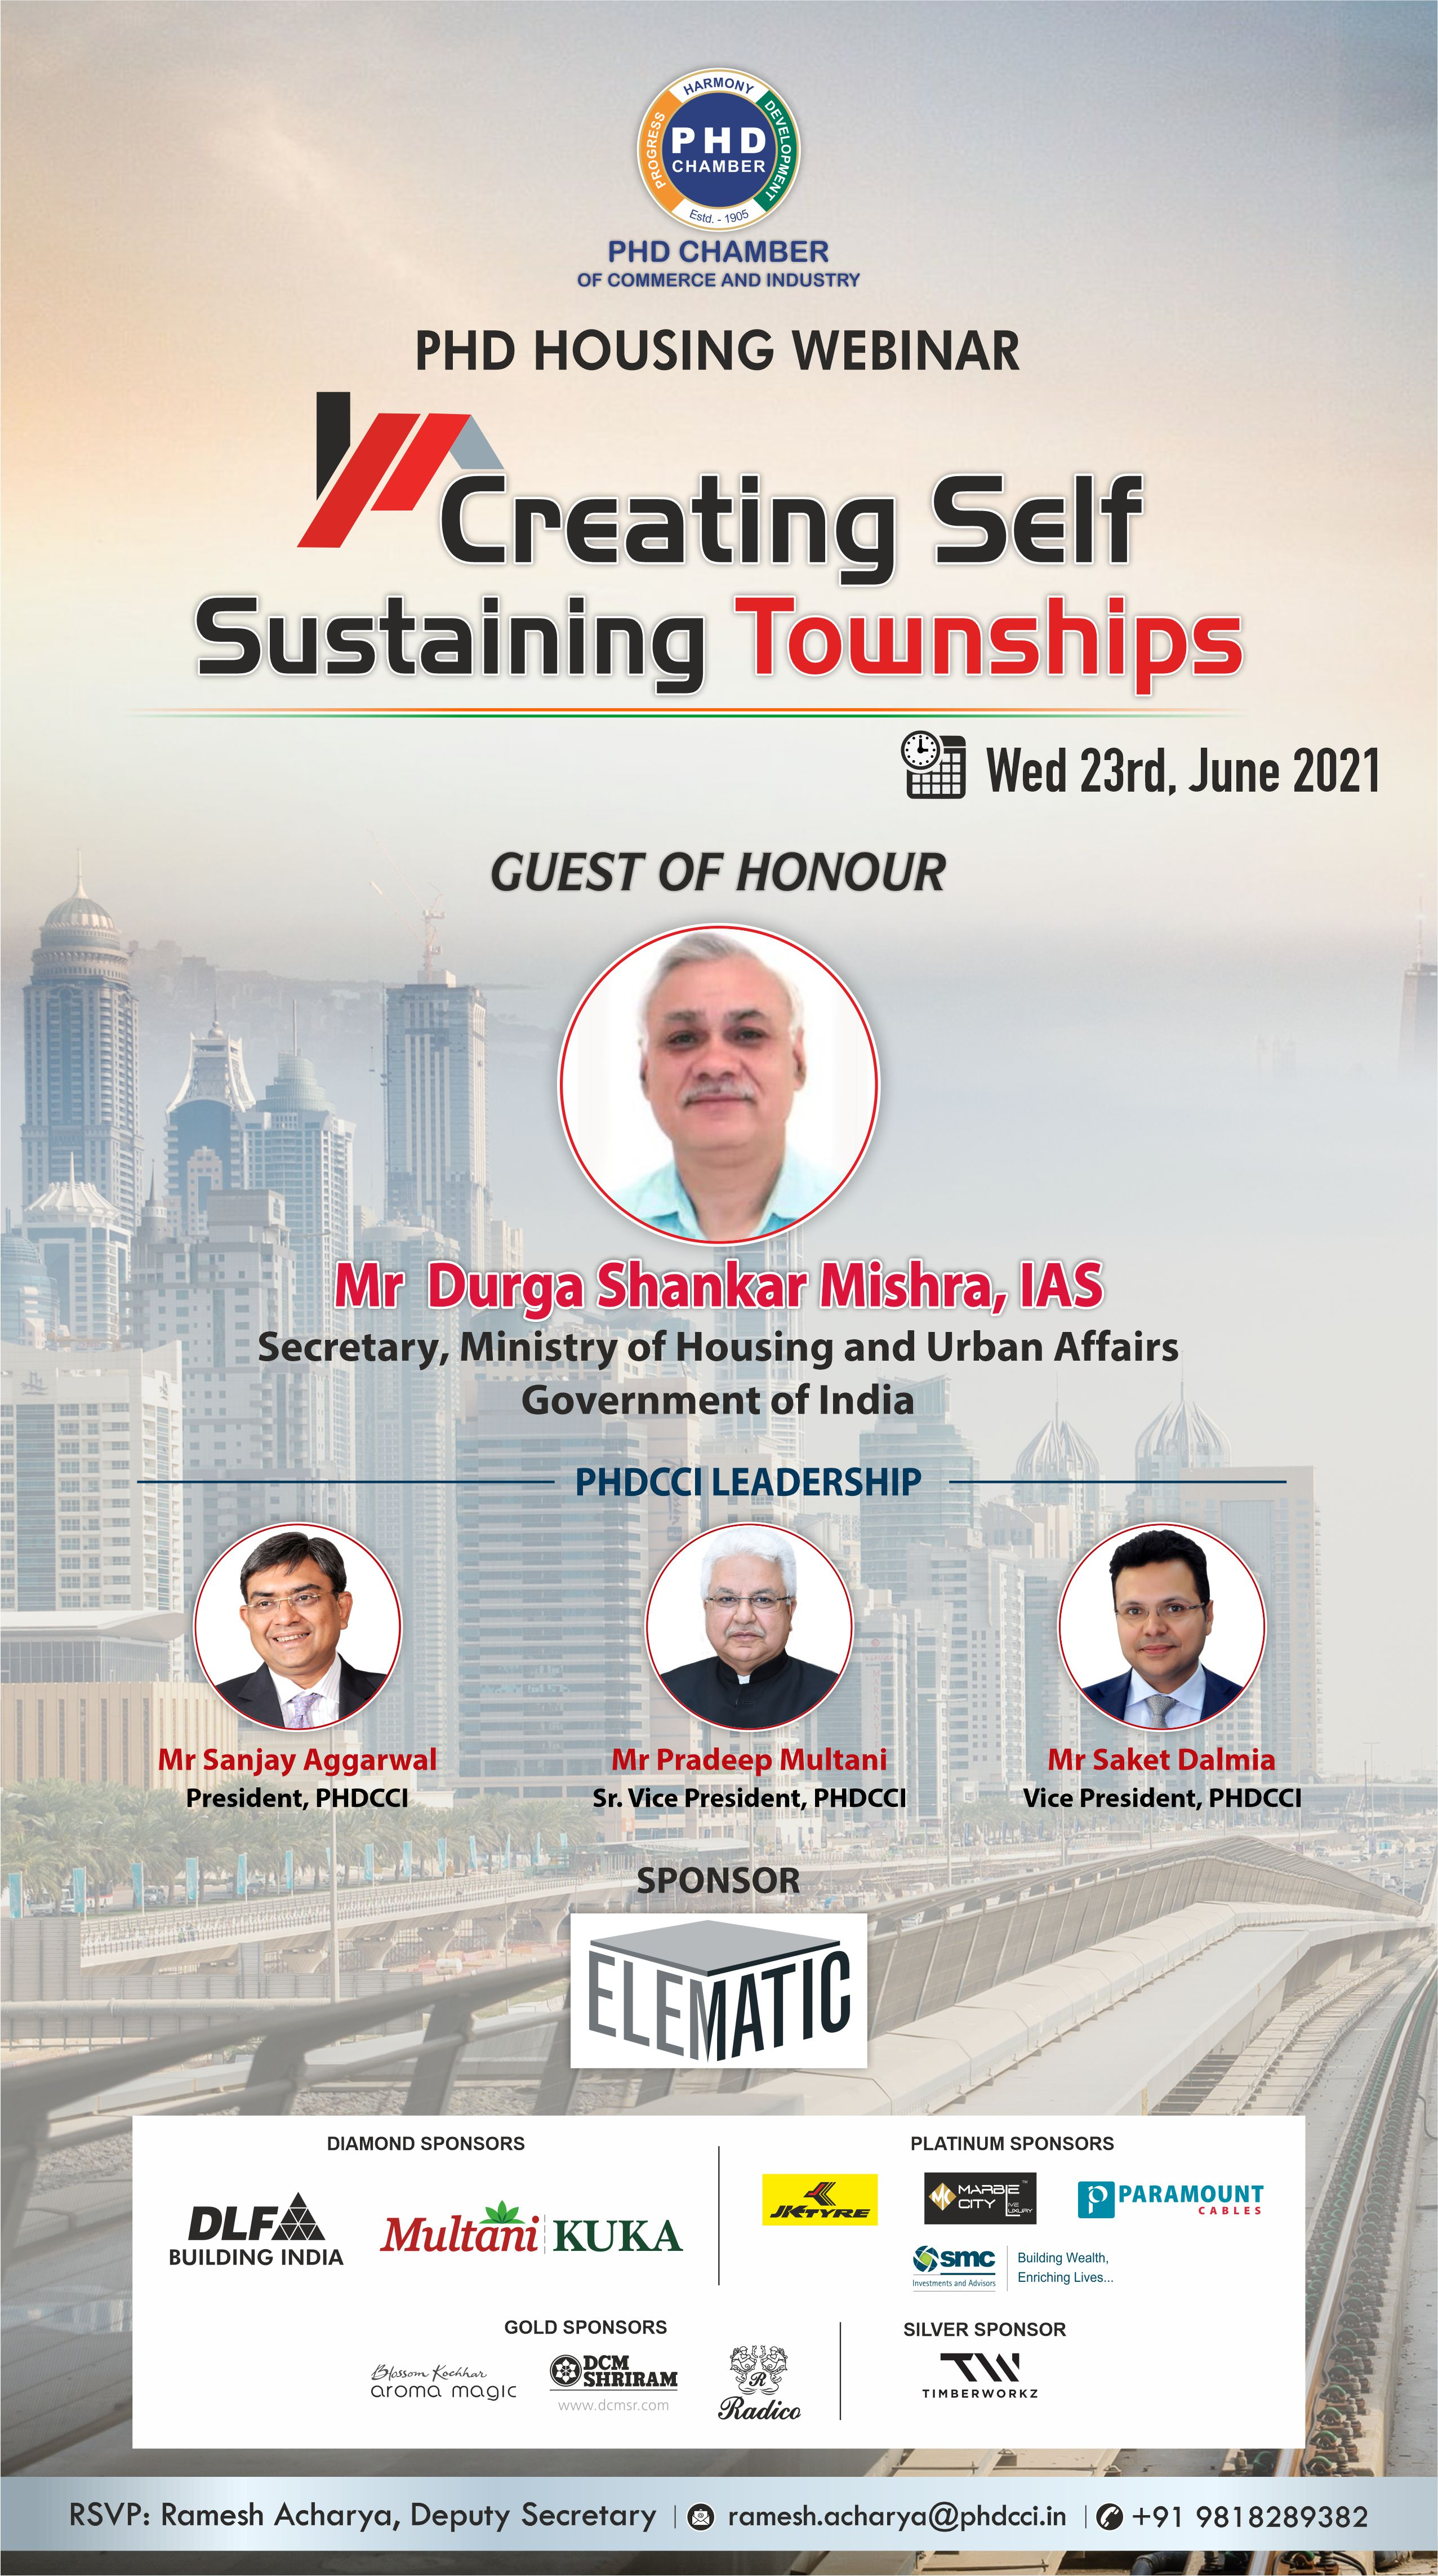 PHDCCI Housing Webinar on Creating Self-Sustainable Cities